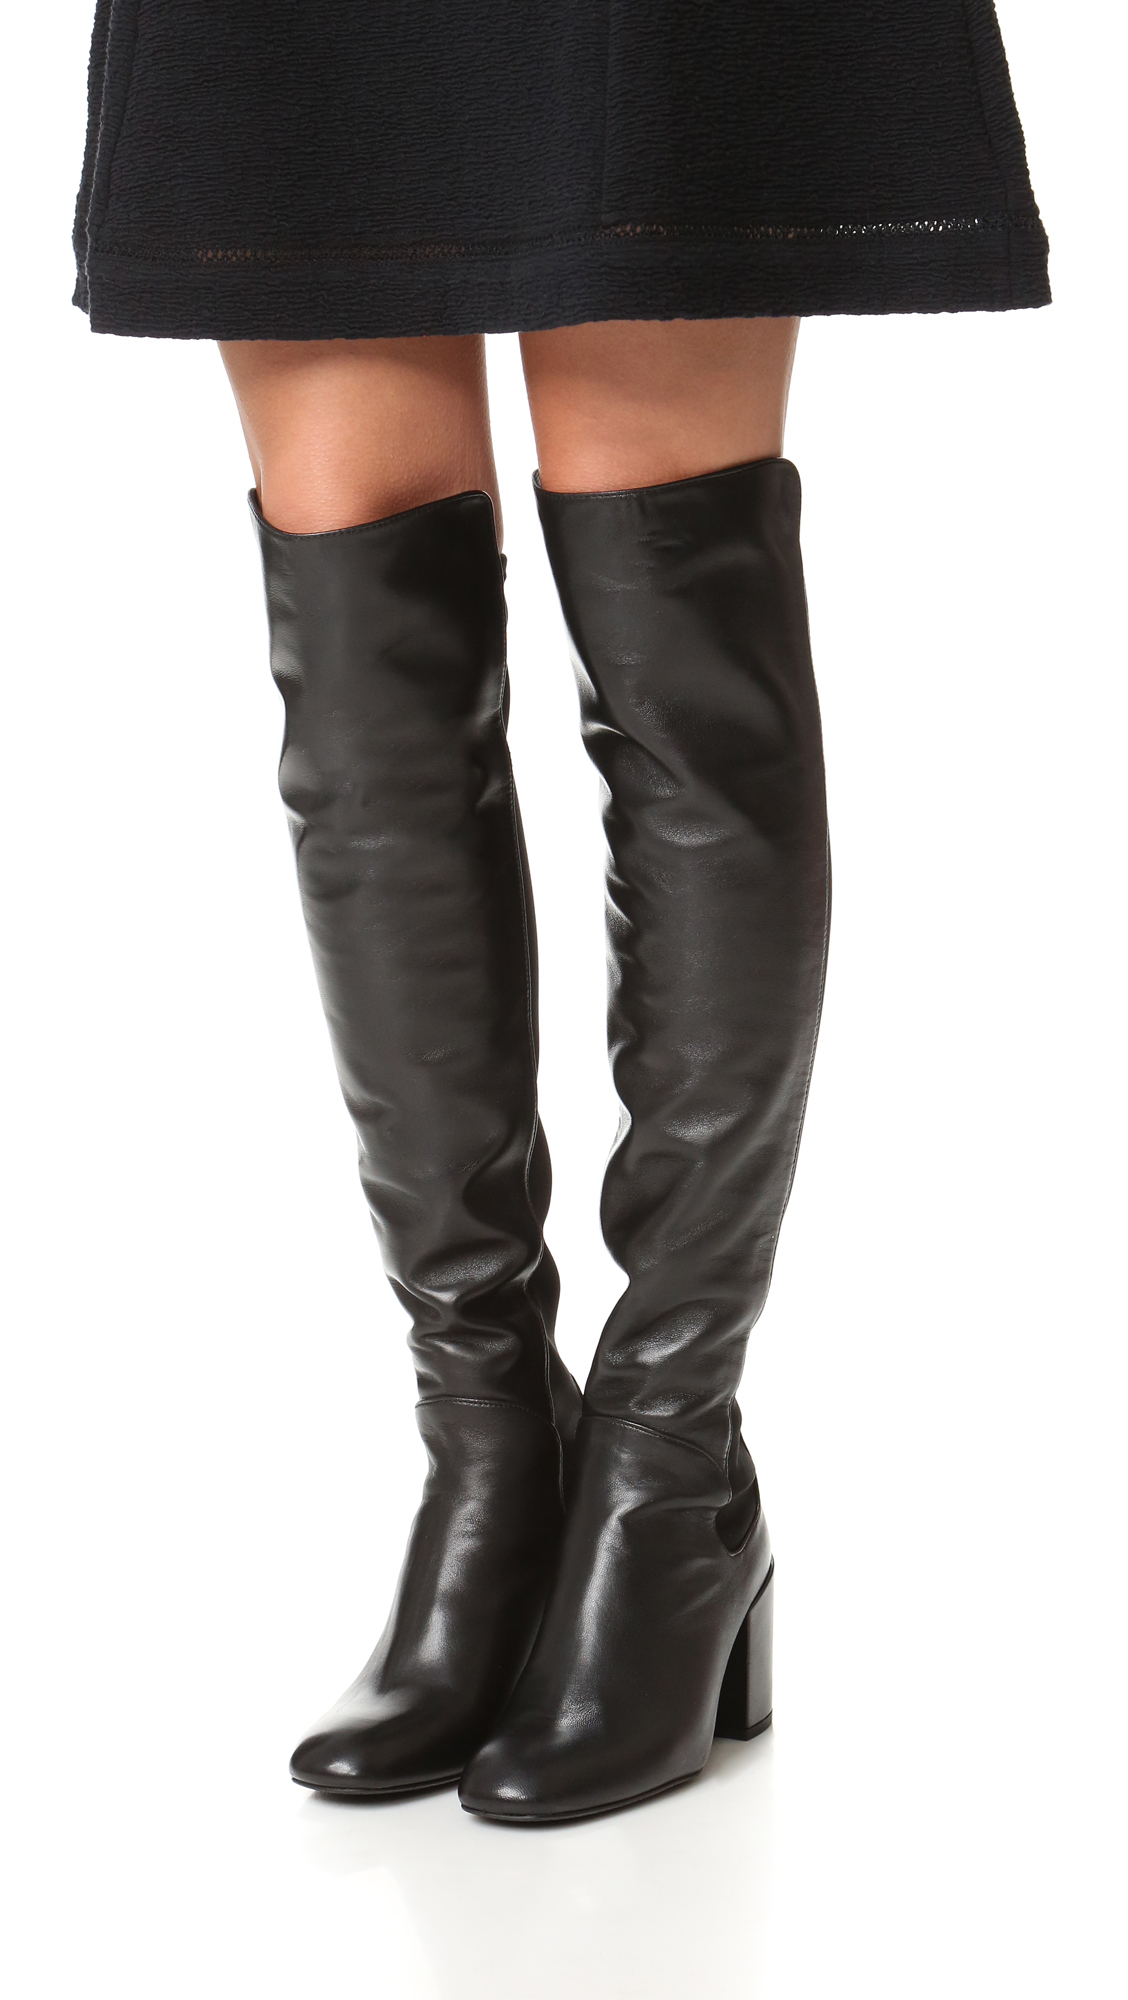 Stuart Weitzman 'Half Time' boots original sale online cheap sale new kOzaE